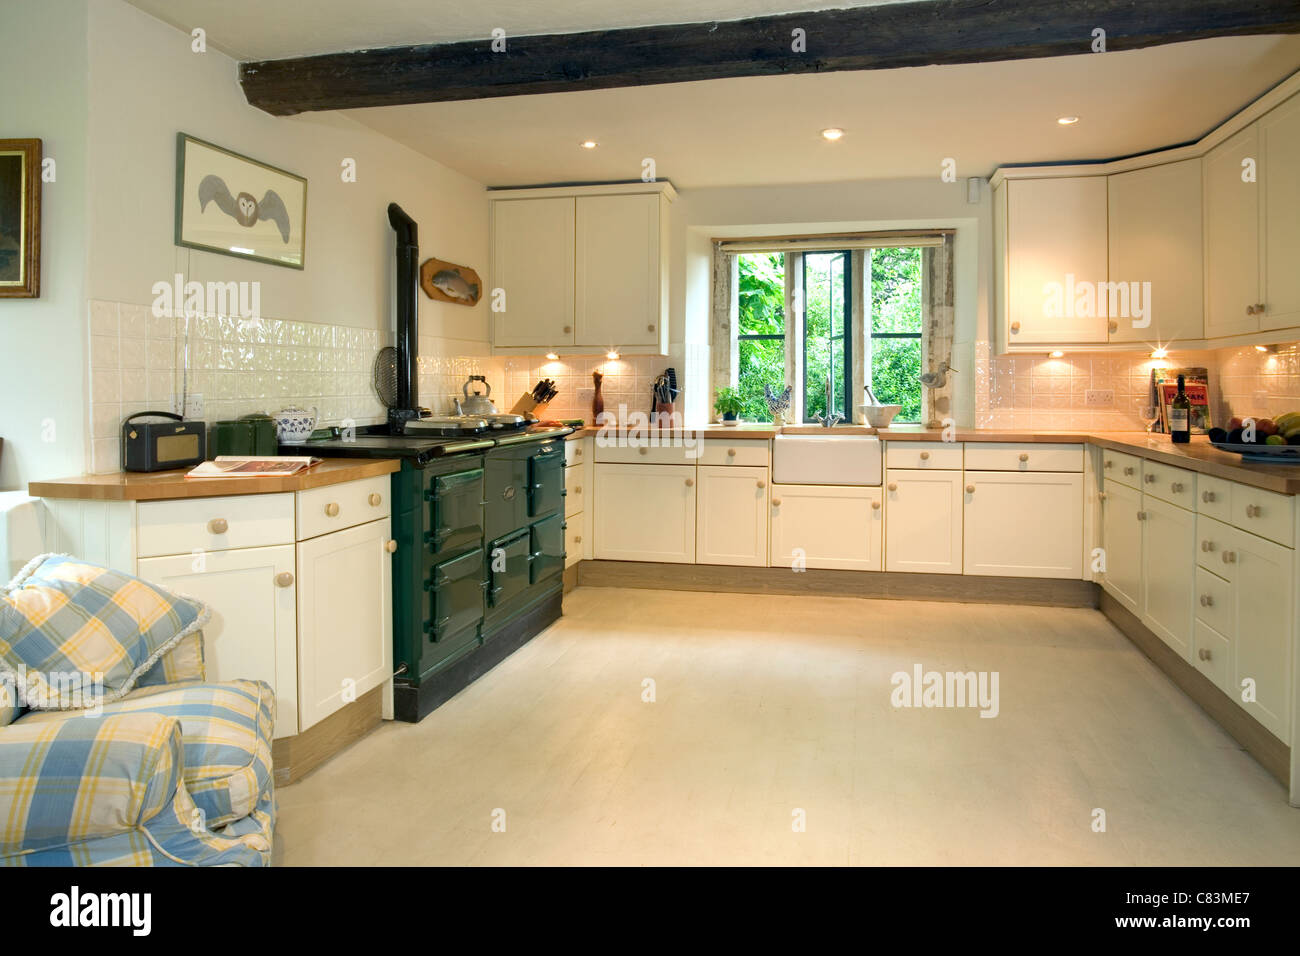 contemporary style kitchen with aga cooker and butlers